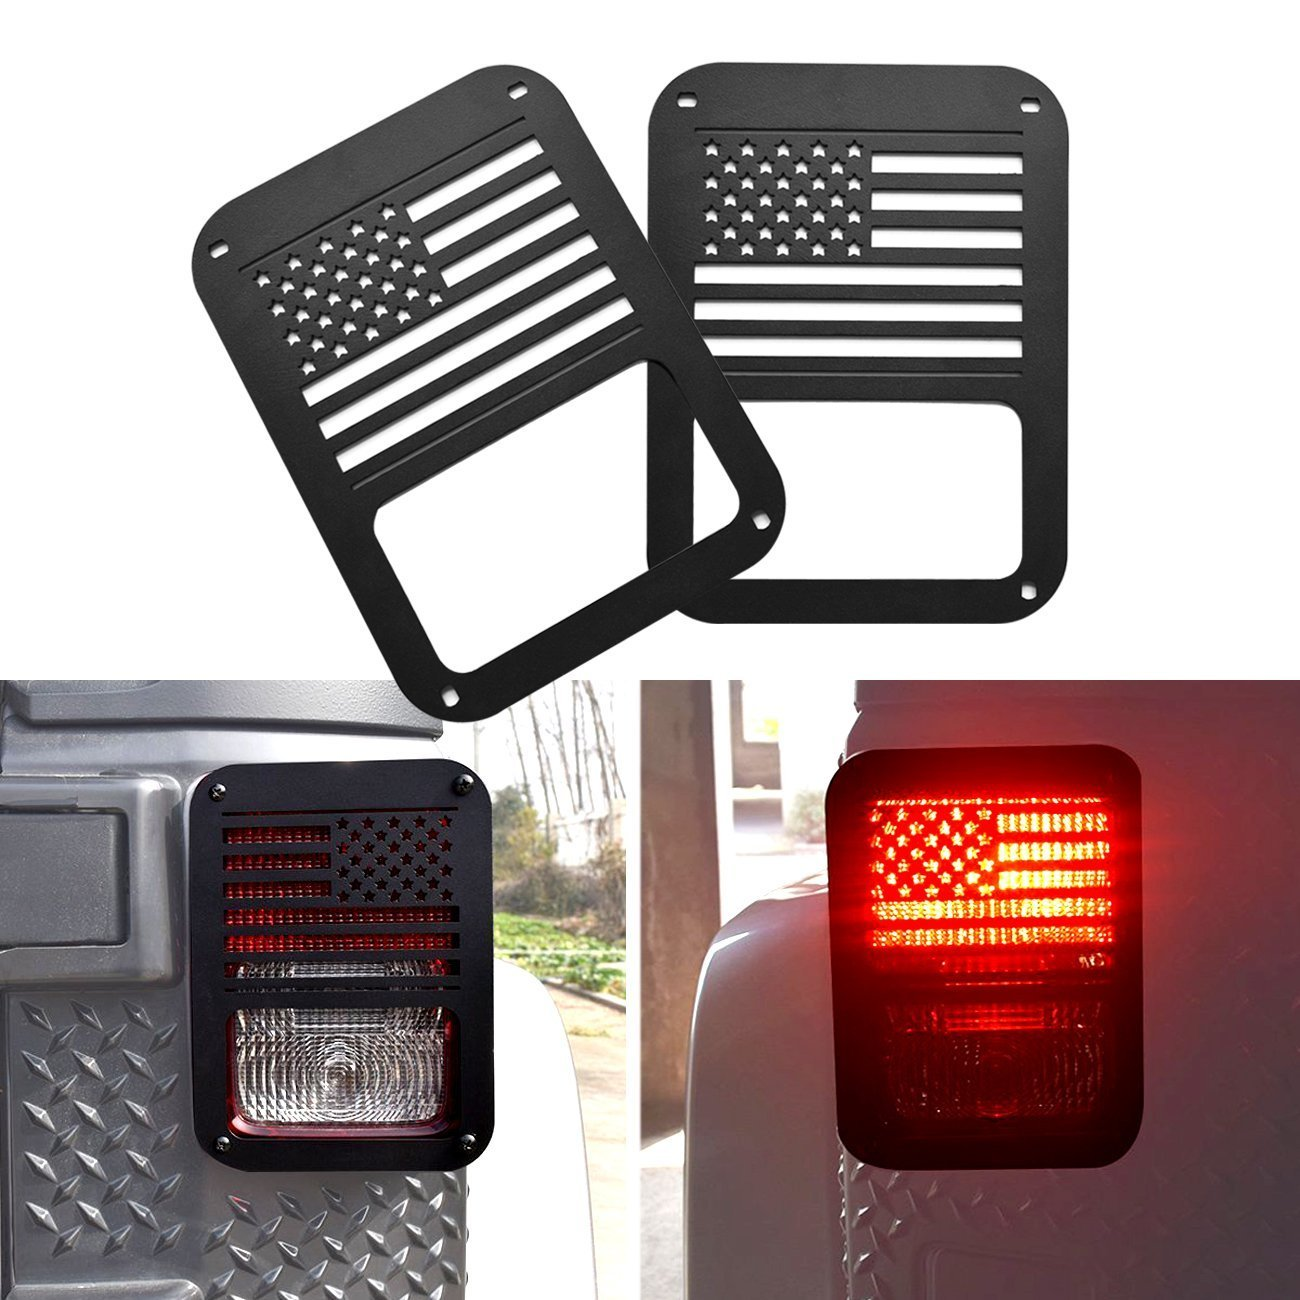 Jeep Light Guards Tail lamp Tail Light Cover Trim Guards Protector for 2007-2017 Jeep Wrangler JK JKU Unlimited Rubicon Sahara Sport Accessories Parts topfullrock